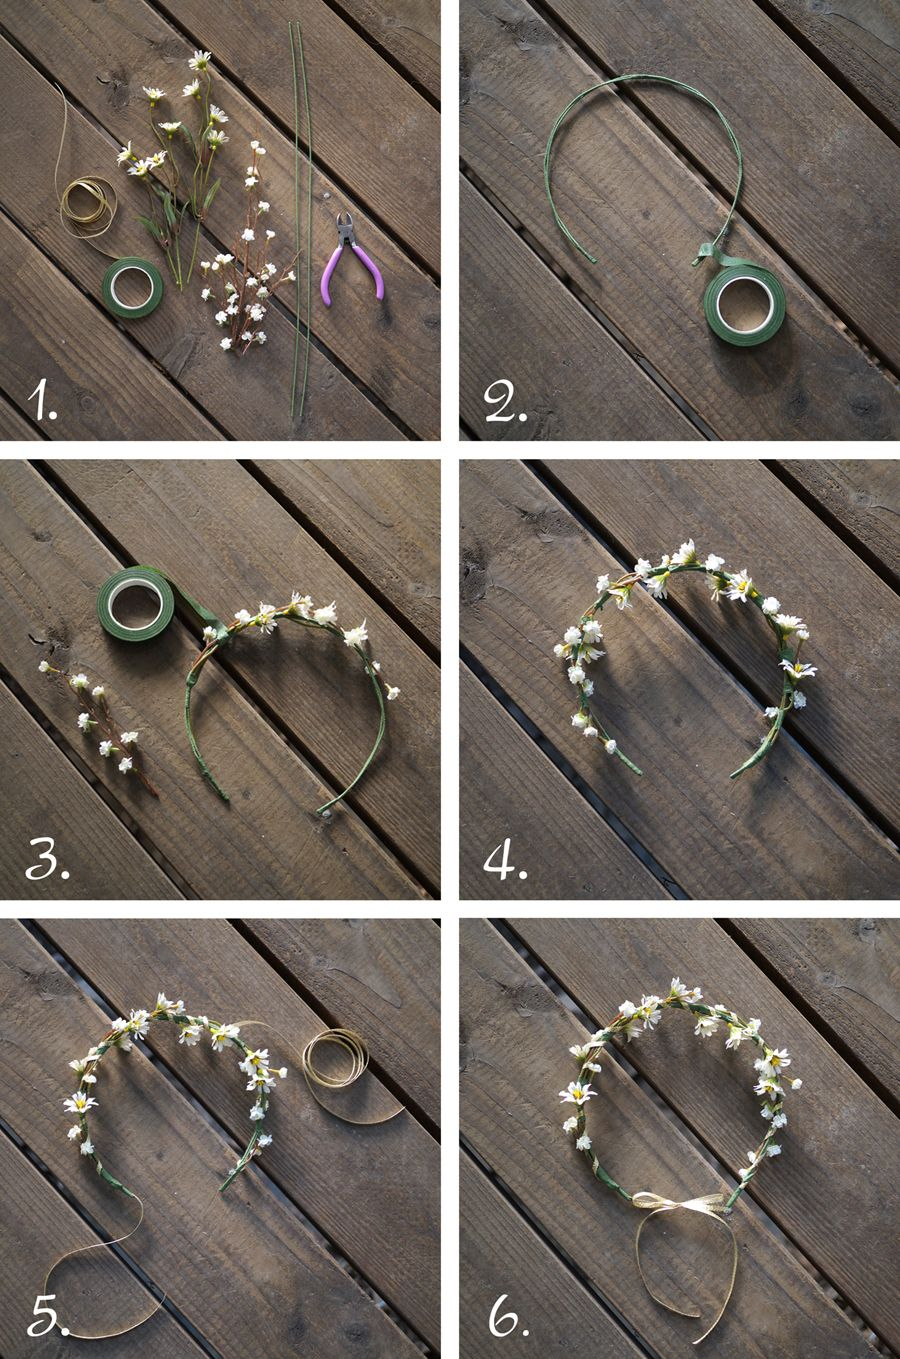 231cc7ce99c Floral Crown Tutorial - if only this came with step by step instructions.  But i